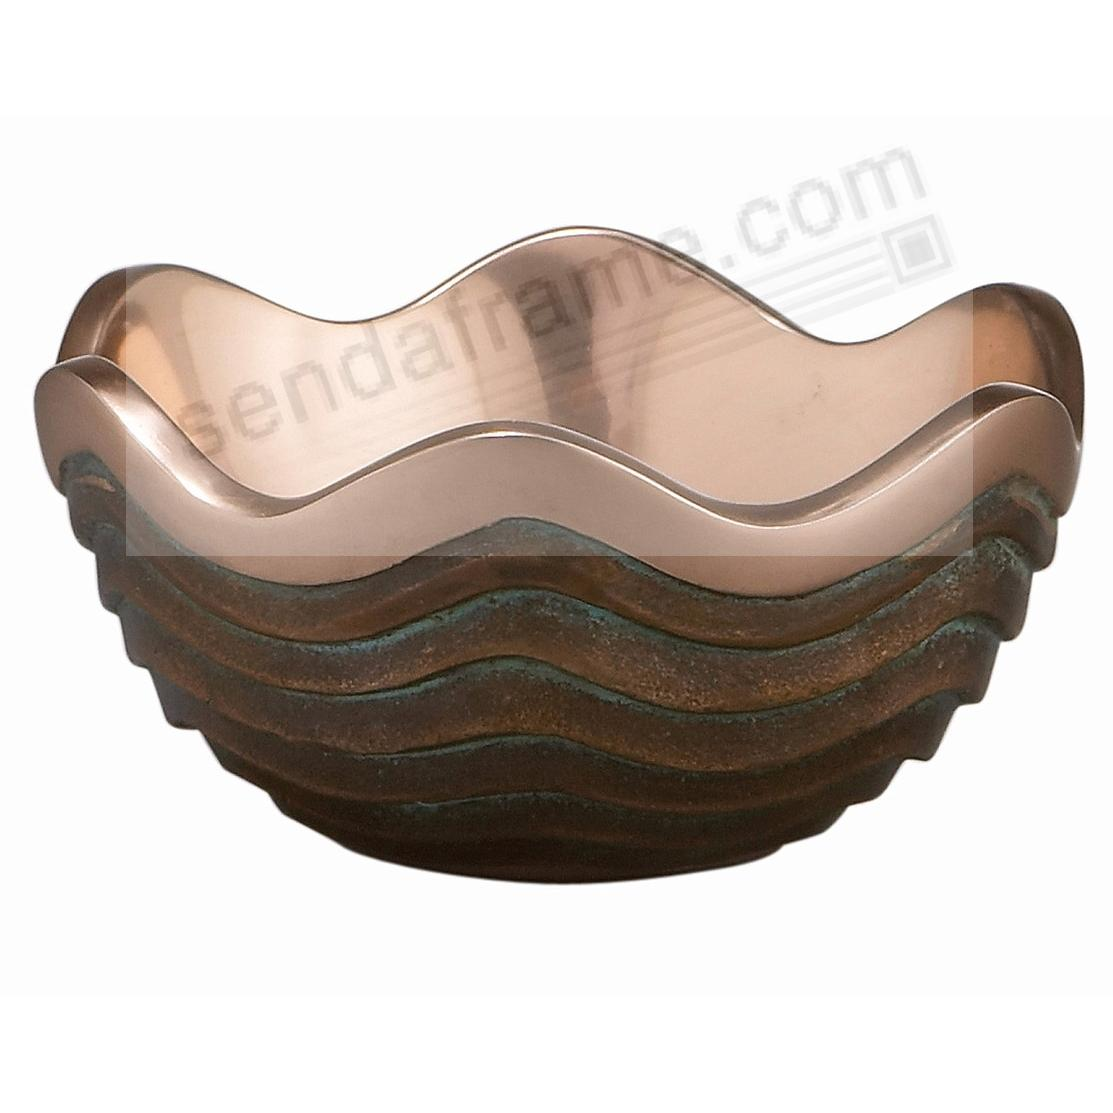 The Original 6½oz / 4½inch COPPER CANYON BOWL crafted by Nambe®